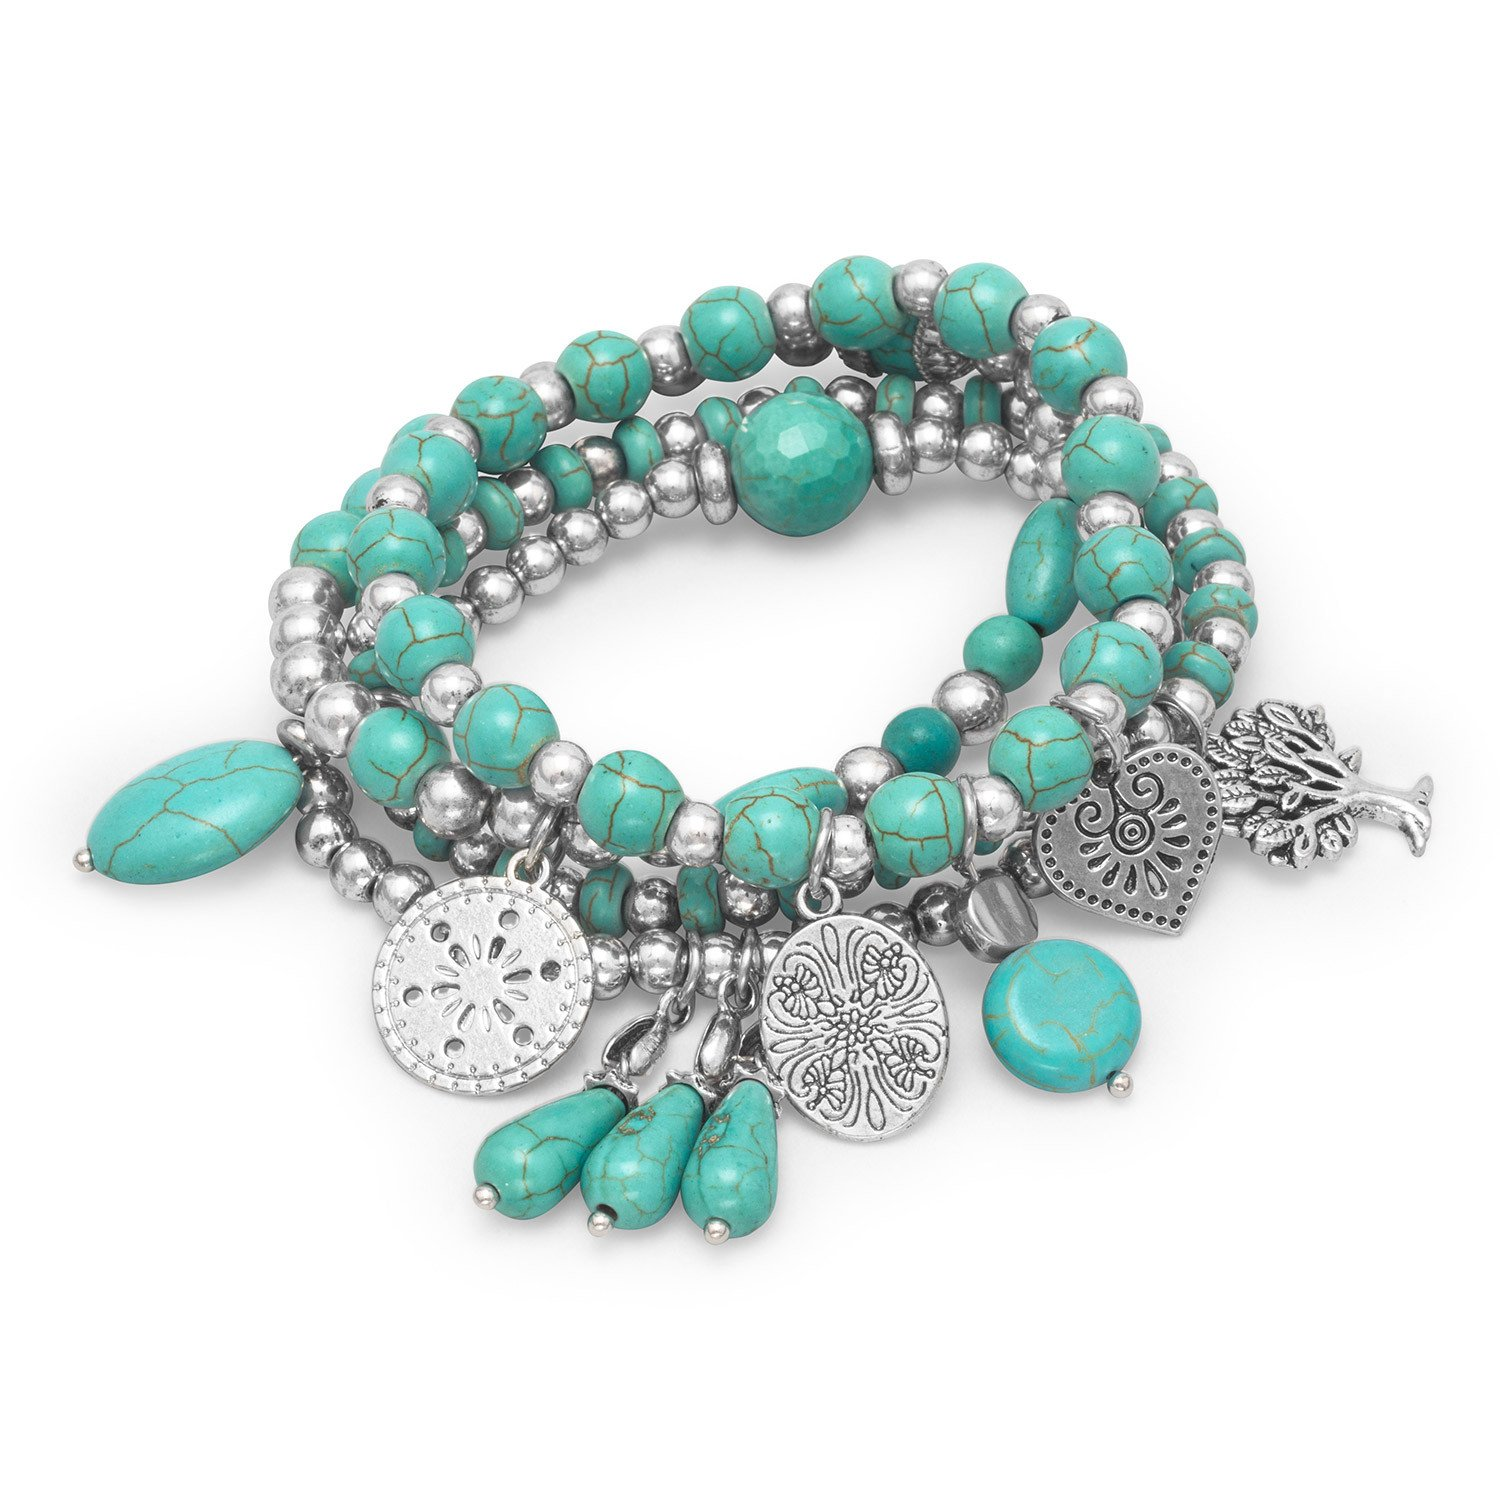 Set of 4 Silver Tone Multicharm Fashion Stretch Bracelets with Reconstituted Turquoise